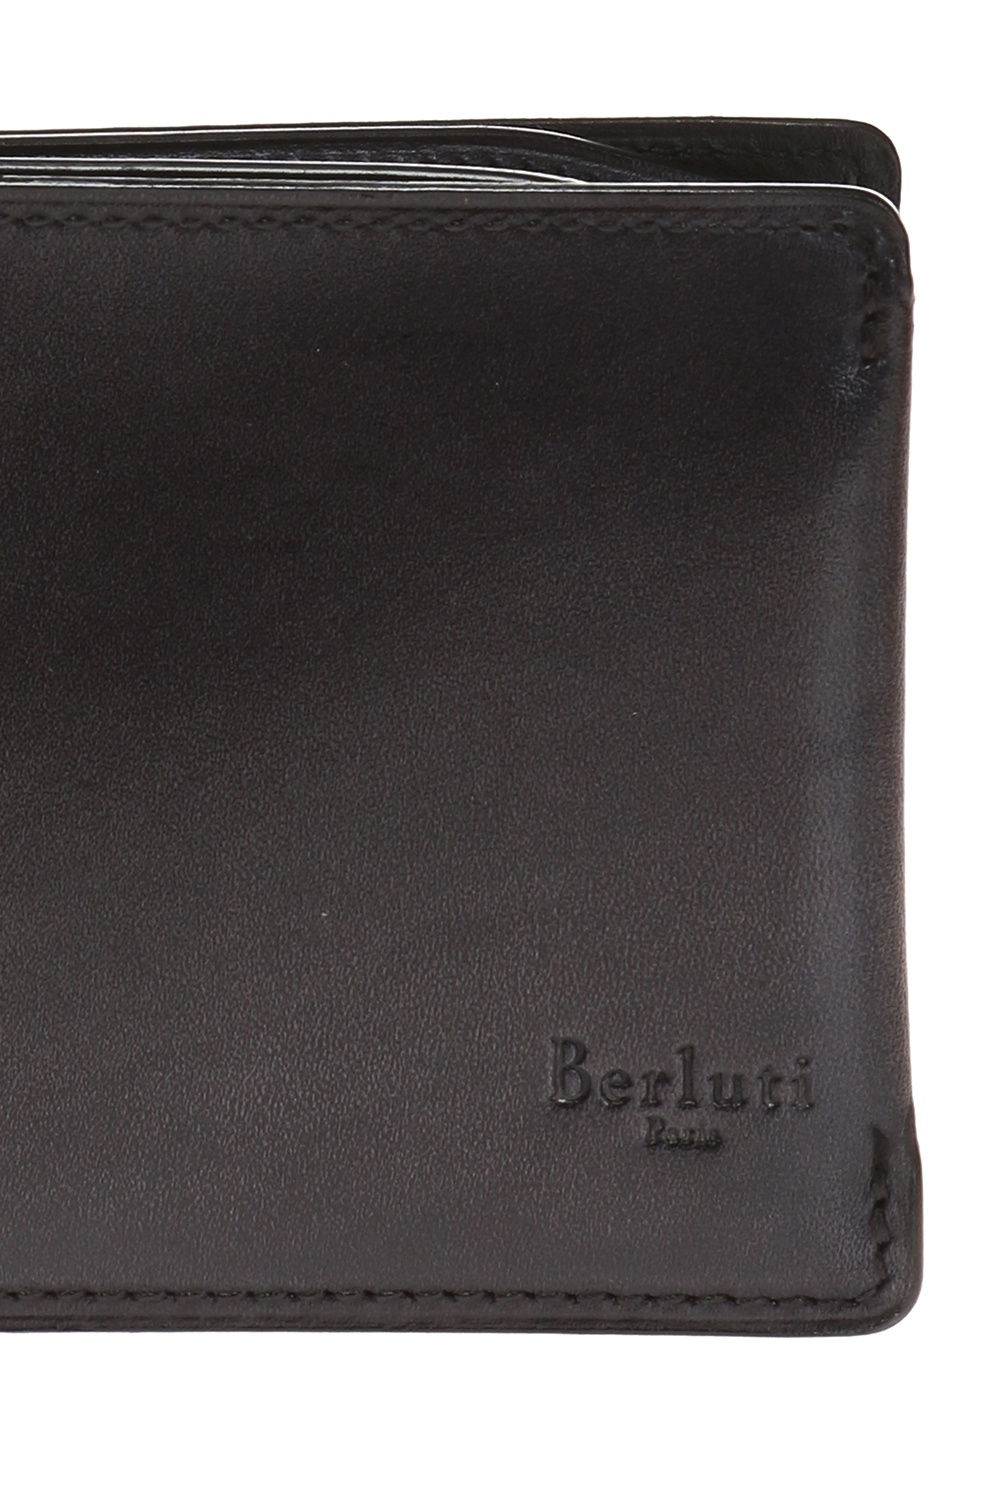 Berluti Bi-fold wallet with logo